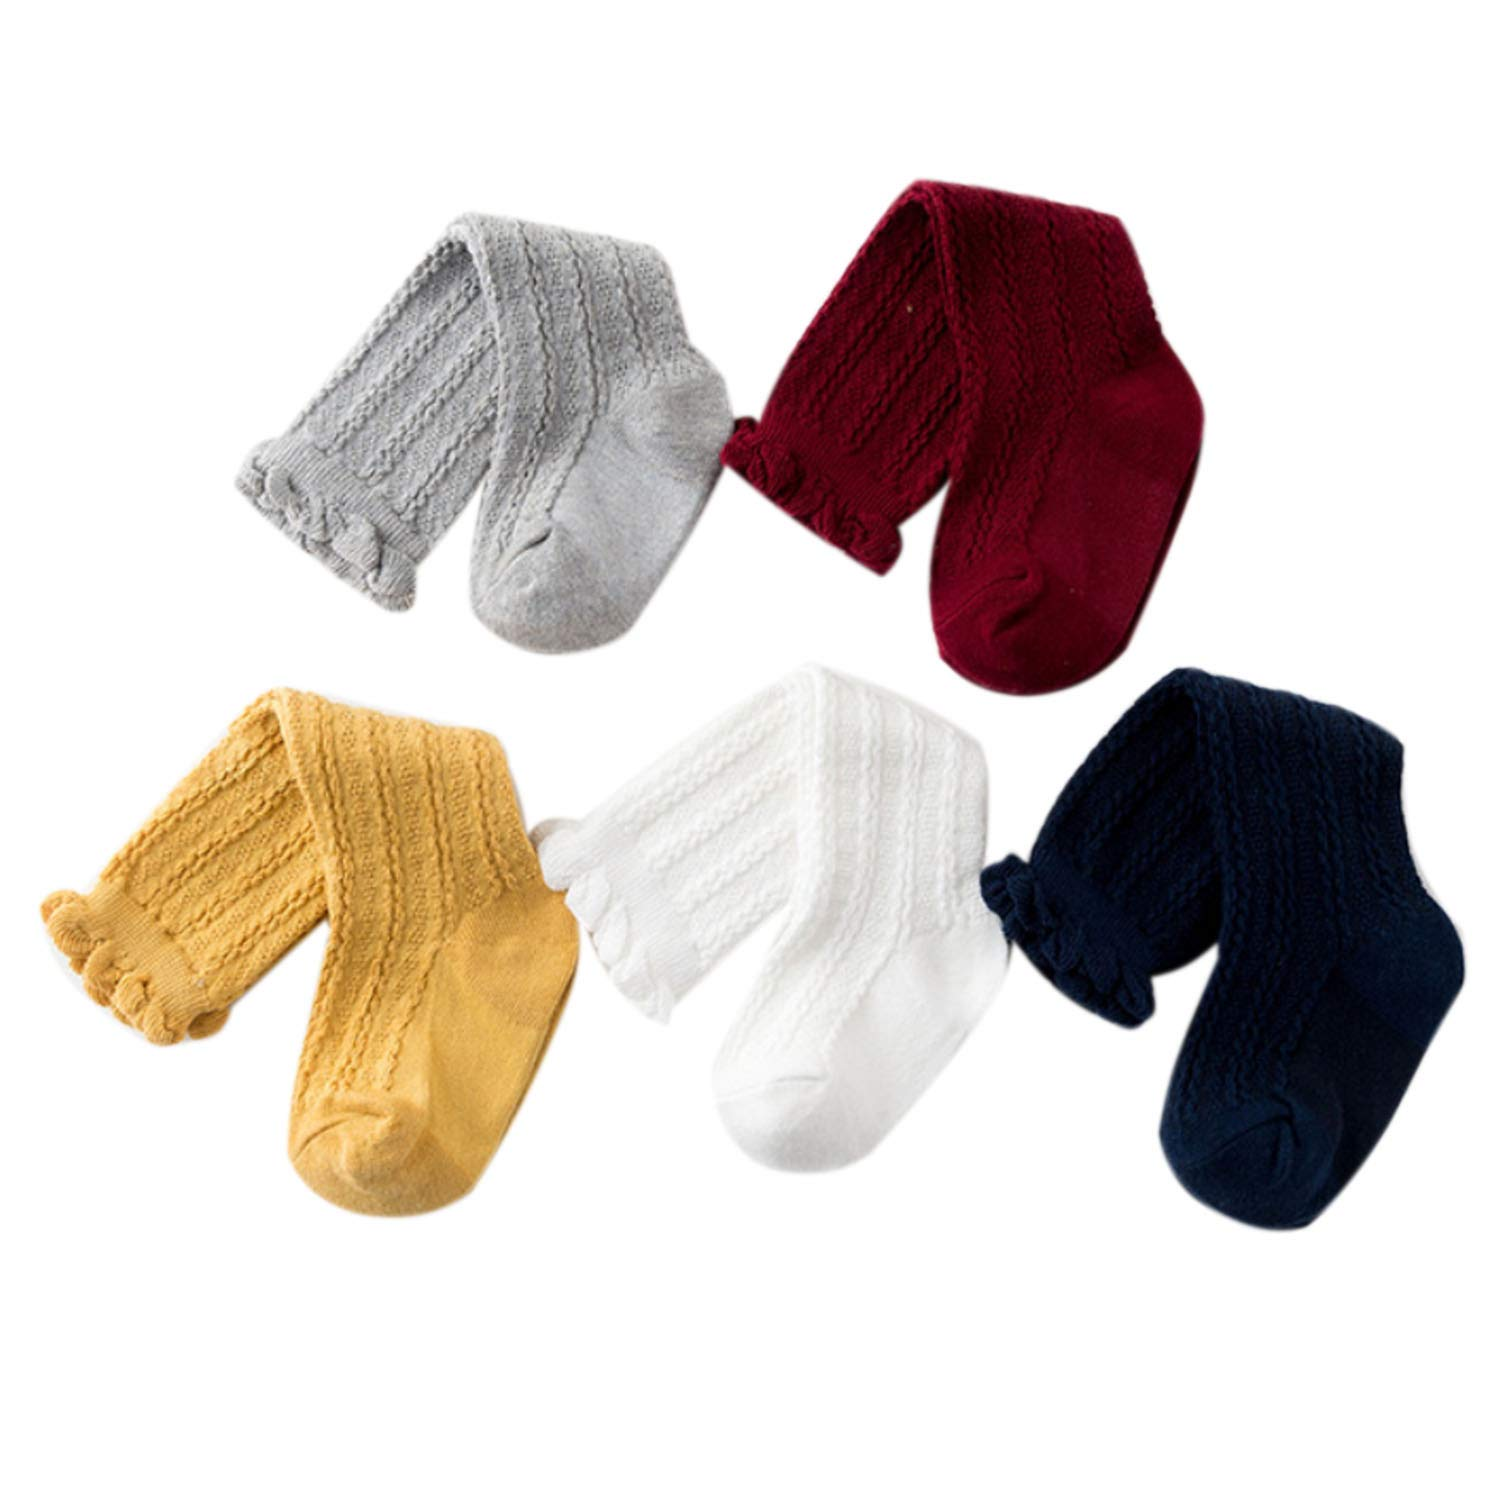 Kaariss Newborn Baby Girl Boy Toddler Cable Knit Knee High Cotton Socks 5 Pack